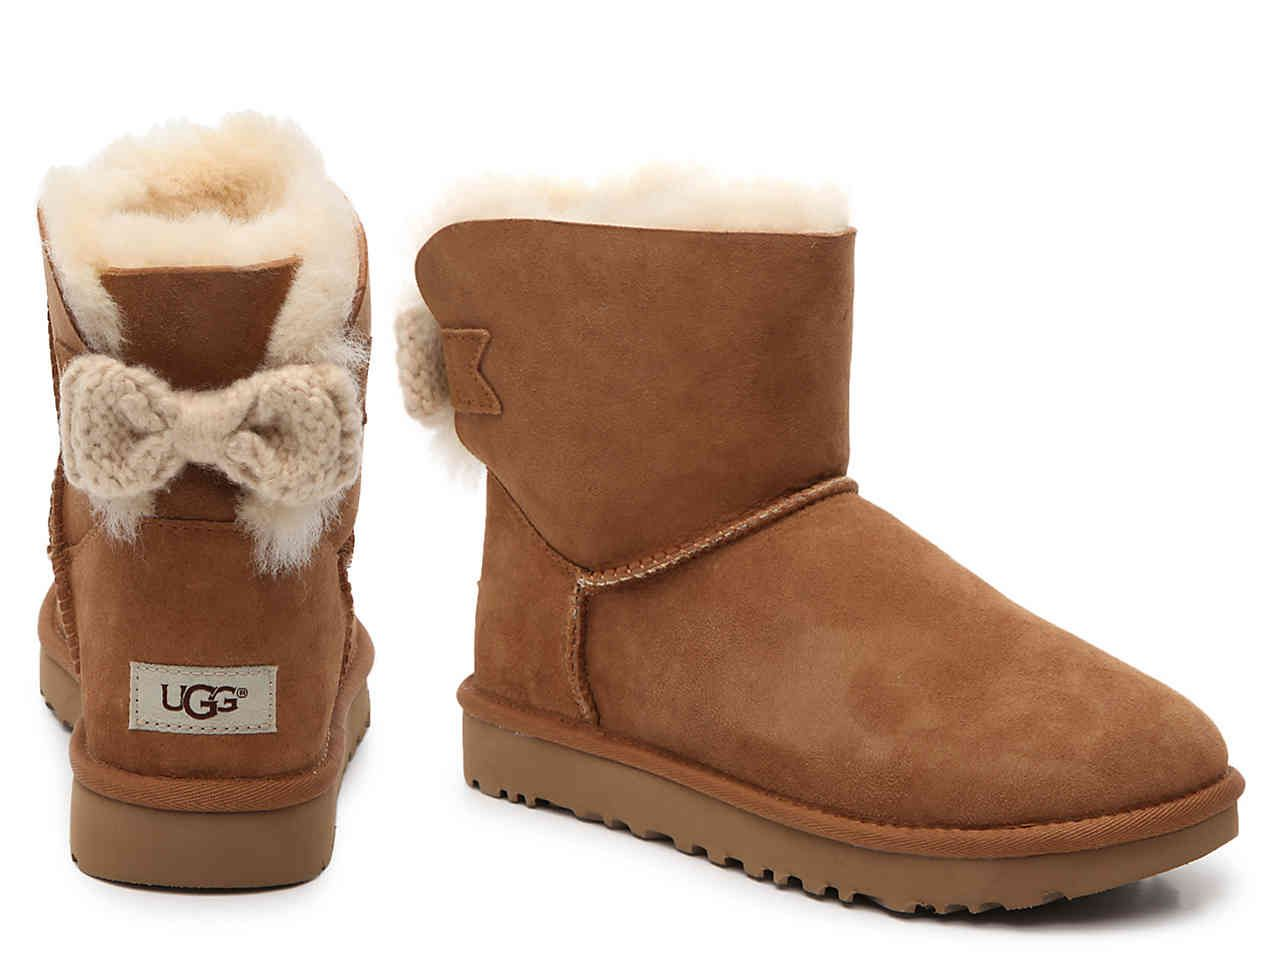 uggs boots at dsw